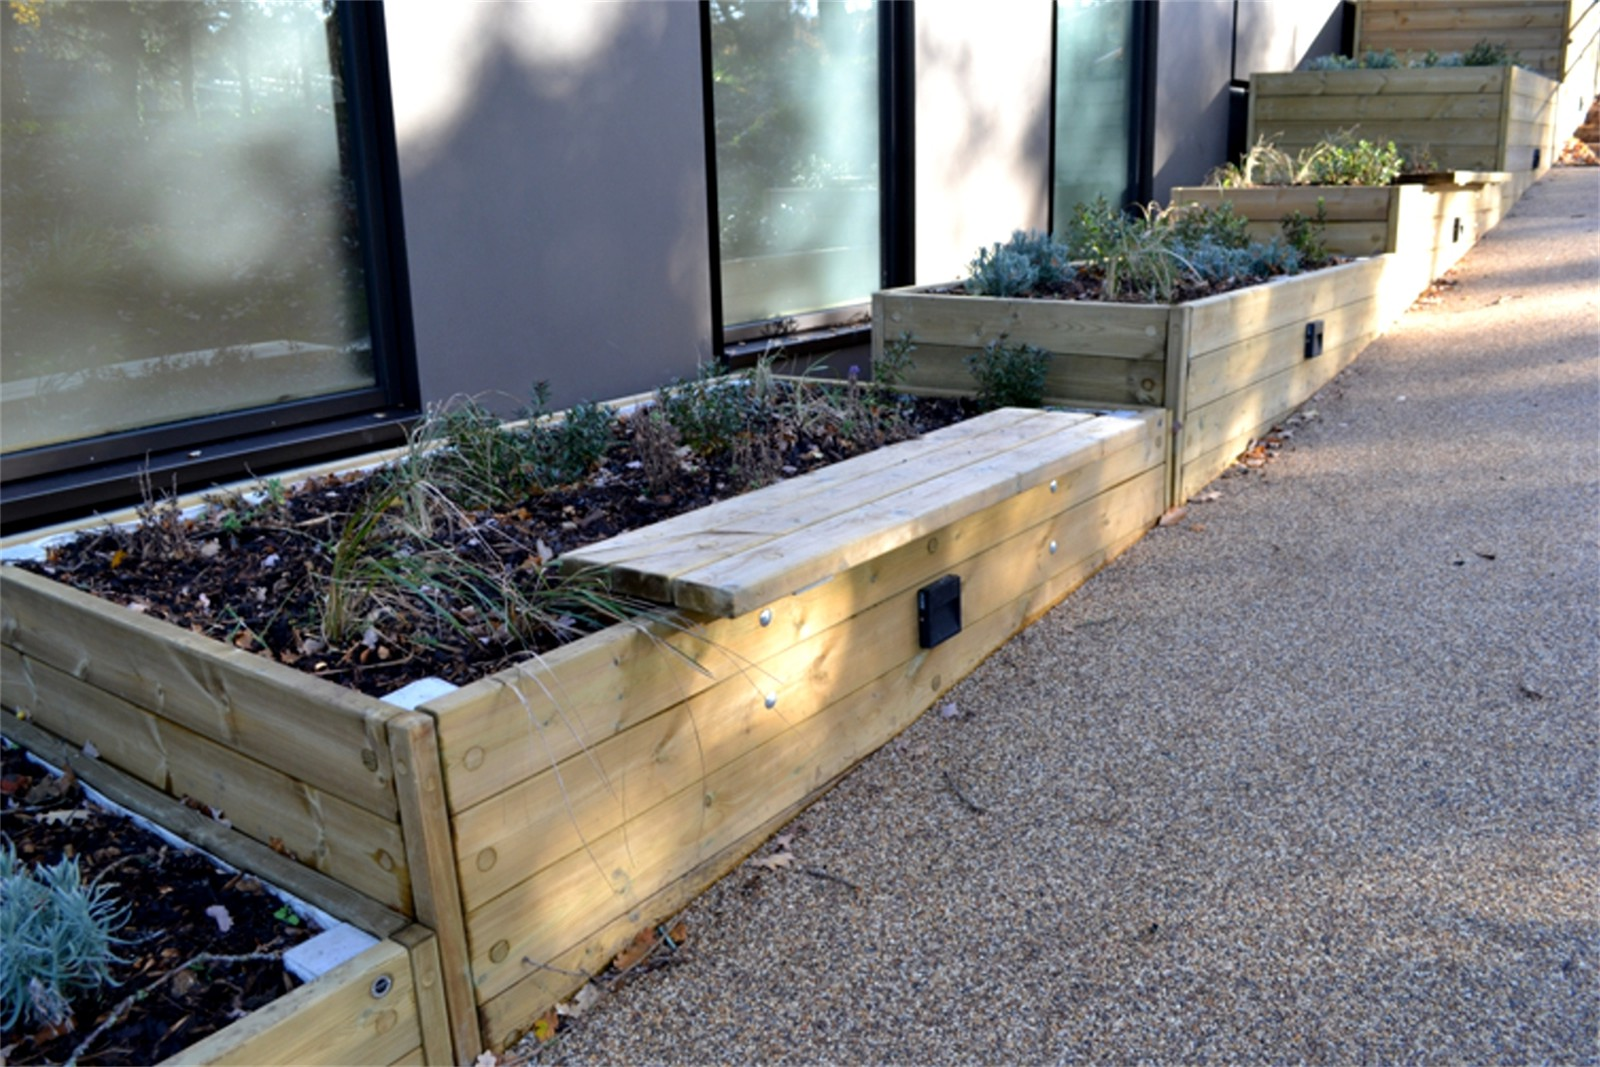 41pgr24 - Large stepped Grenadier planter with bench seating